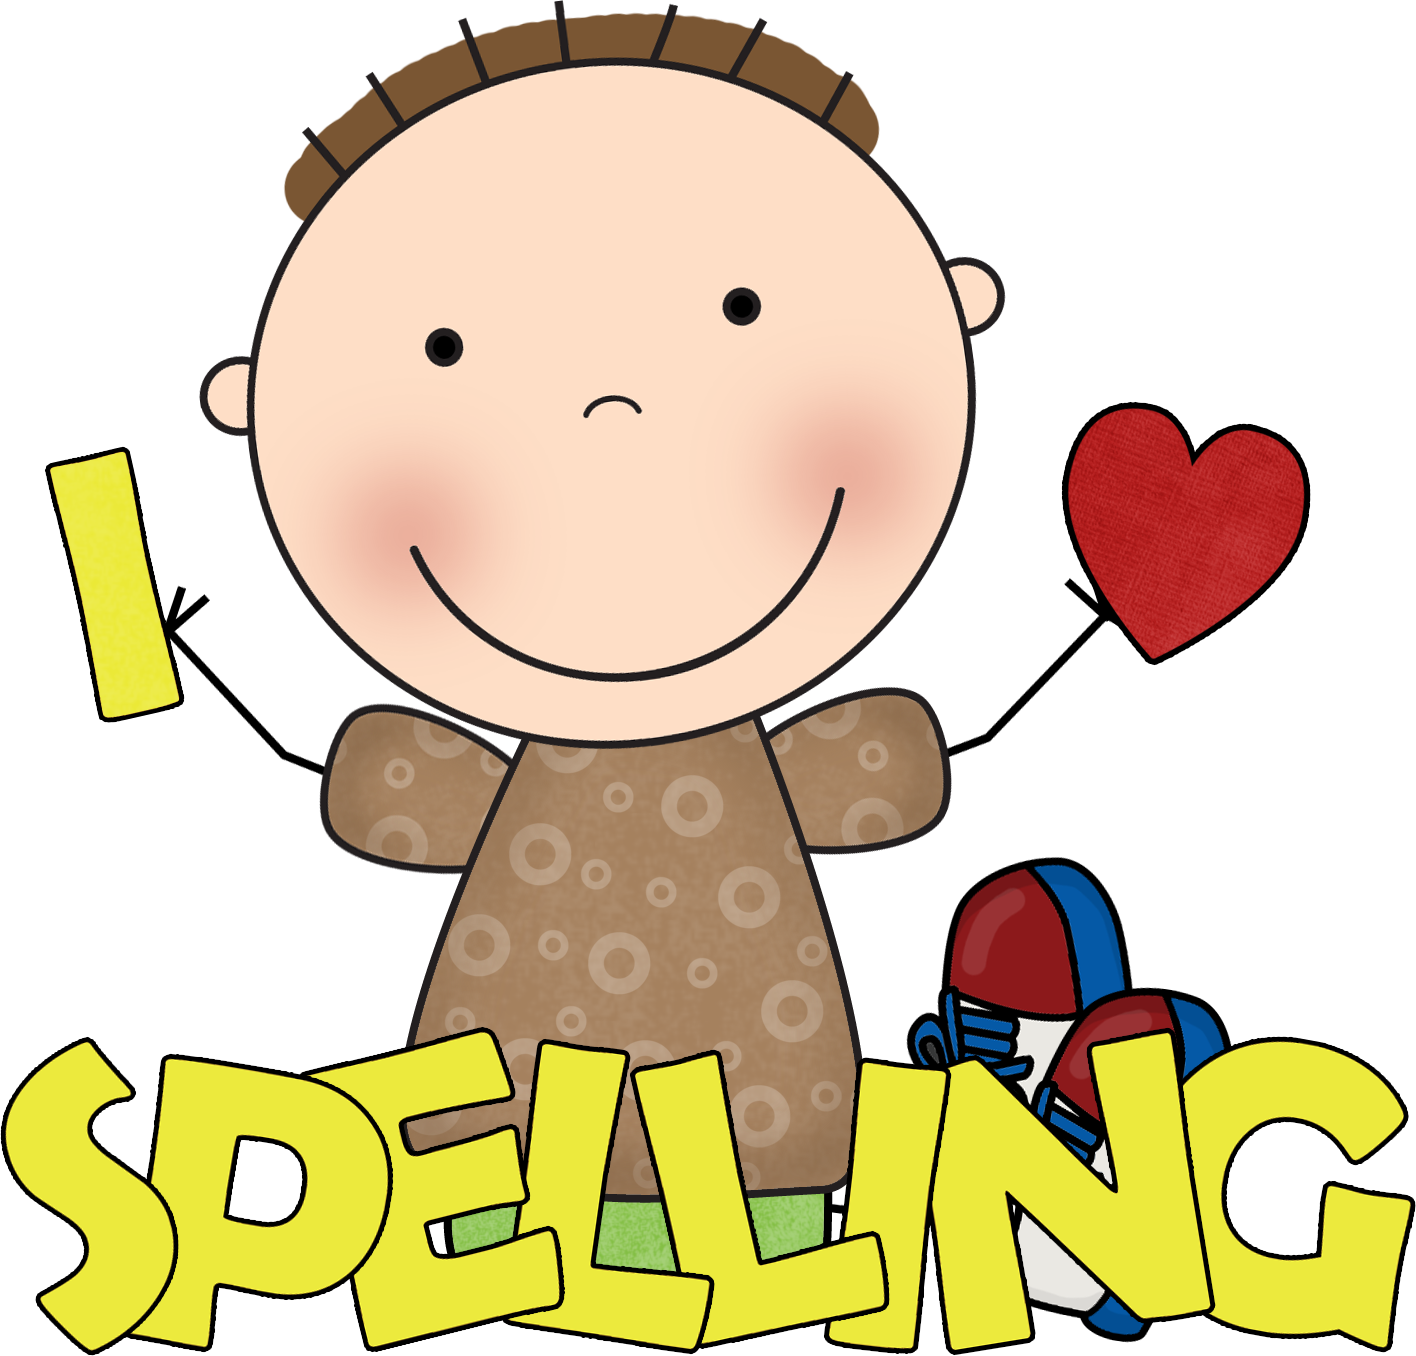 Free for spelling crafts. Poetry clipart scrappin doodles